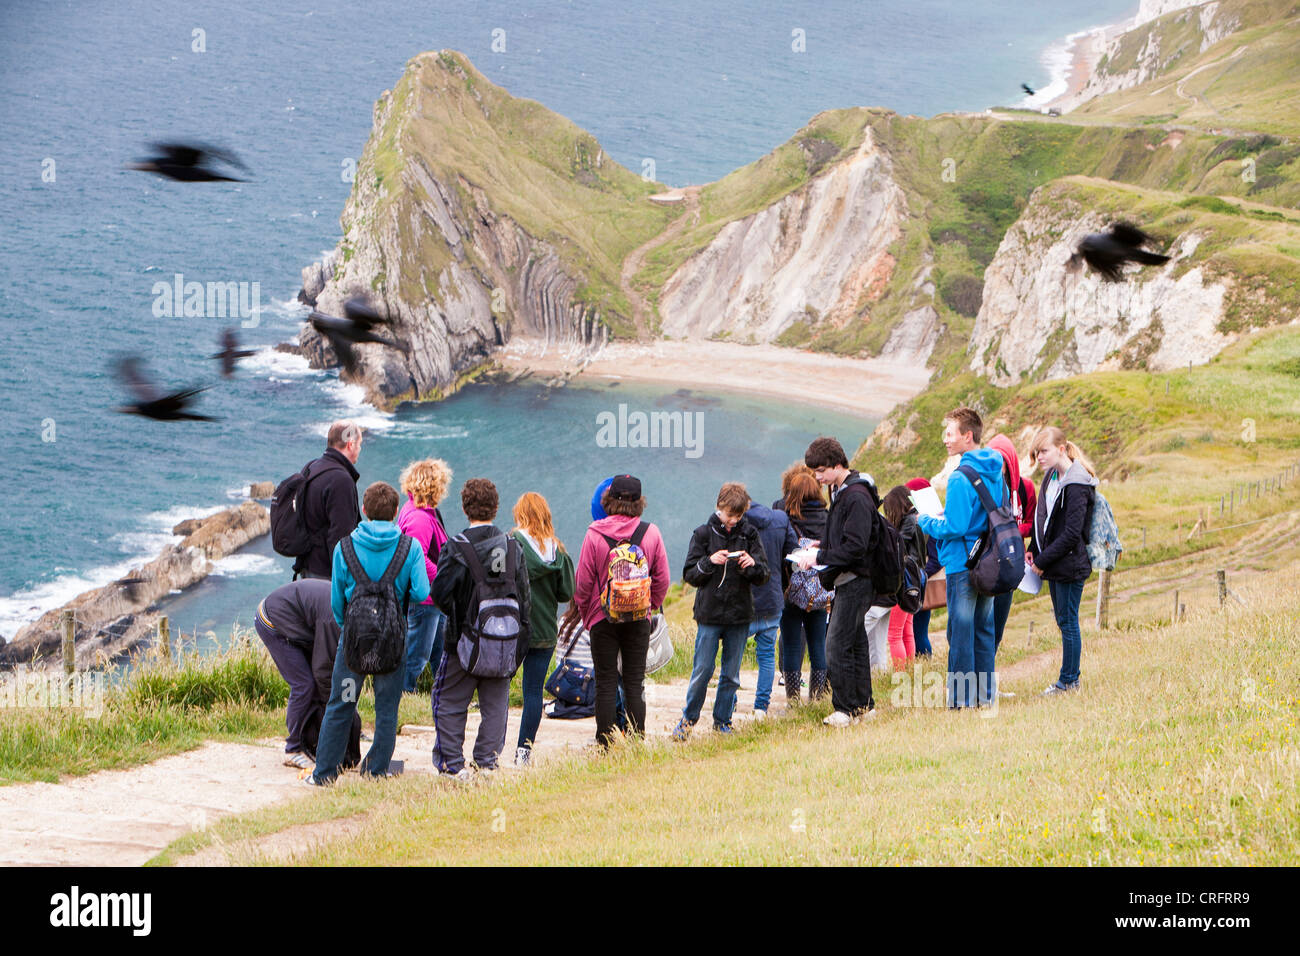 A school field trip on the cliff tops at Durdle Door on the Dorset coast near Lulworth, UK, with a flock of Rooks - Stock Image